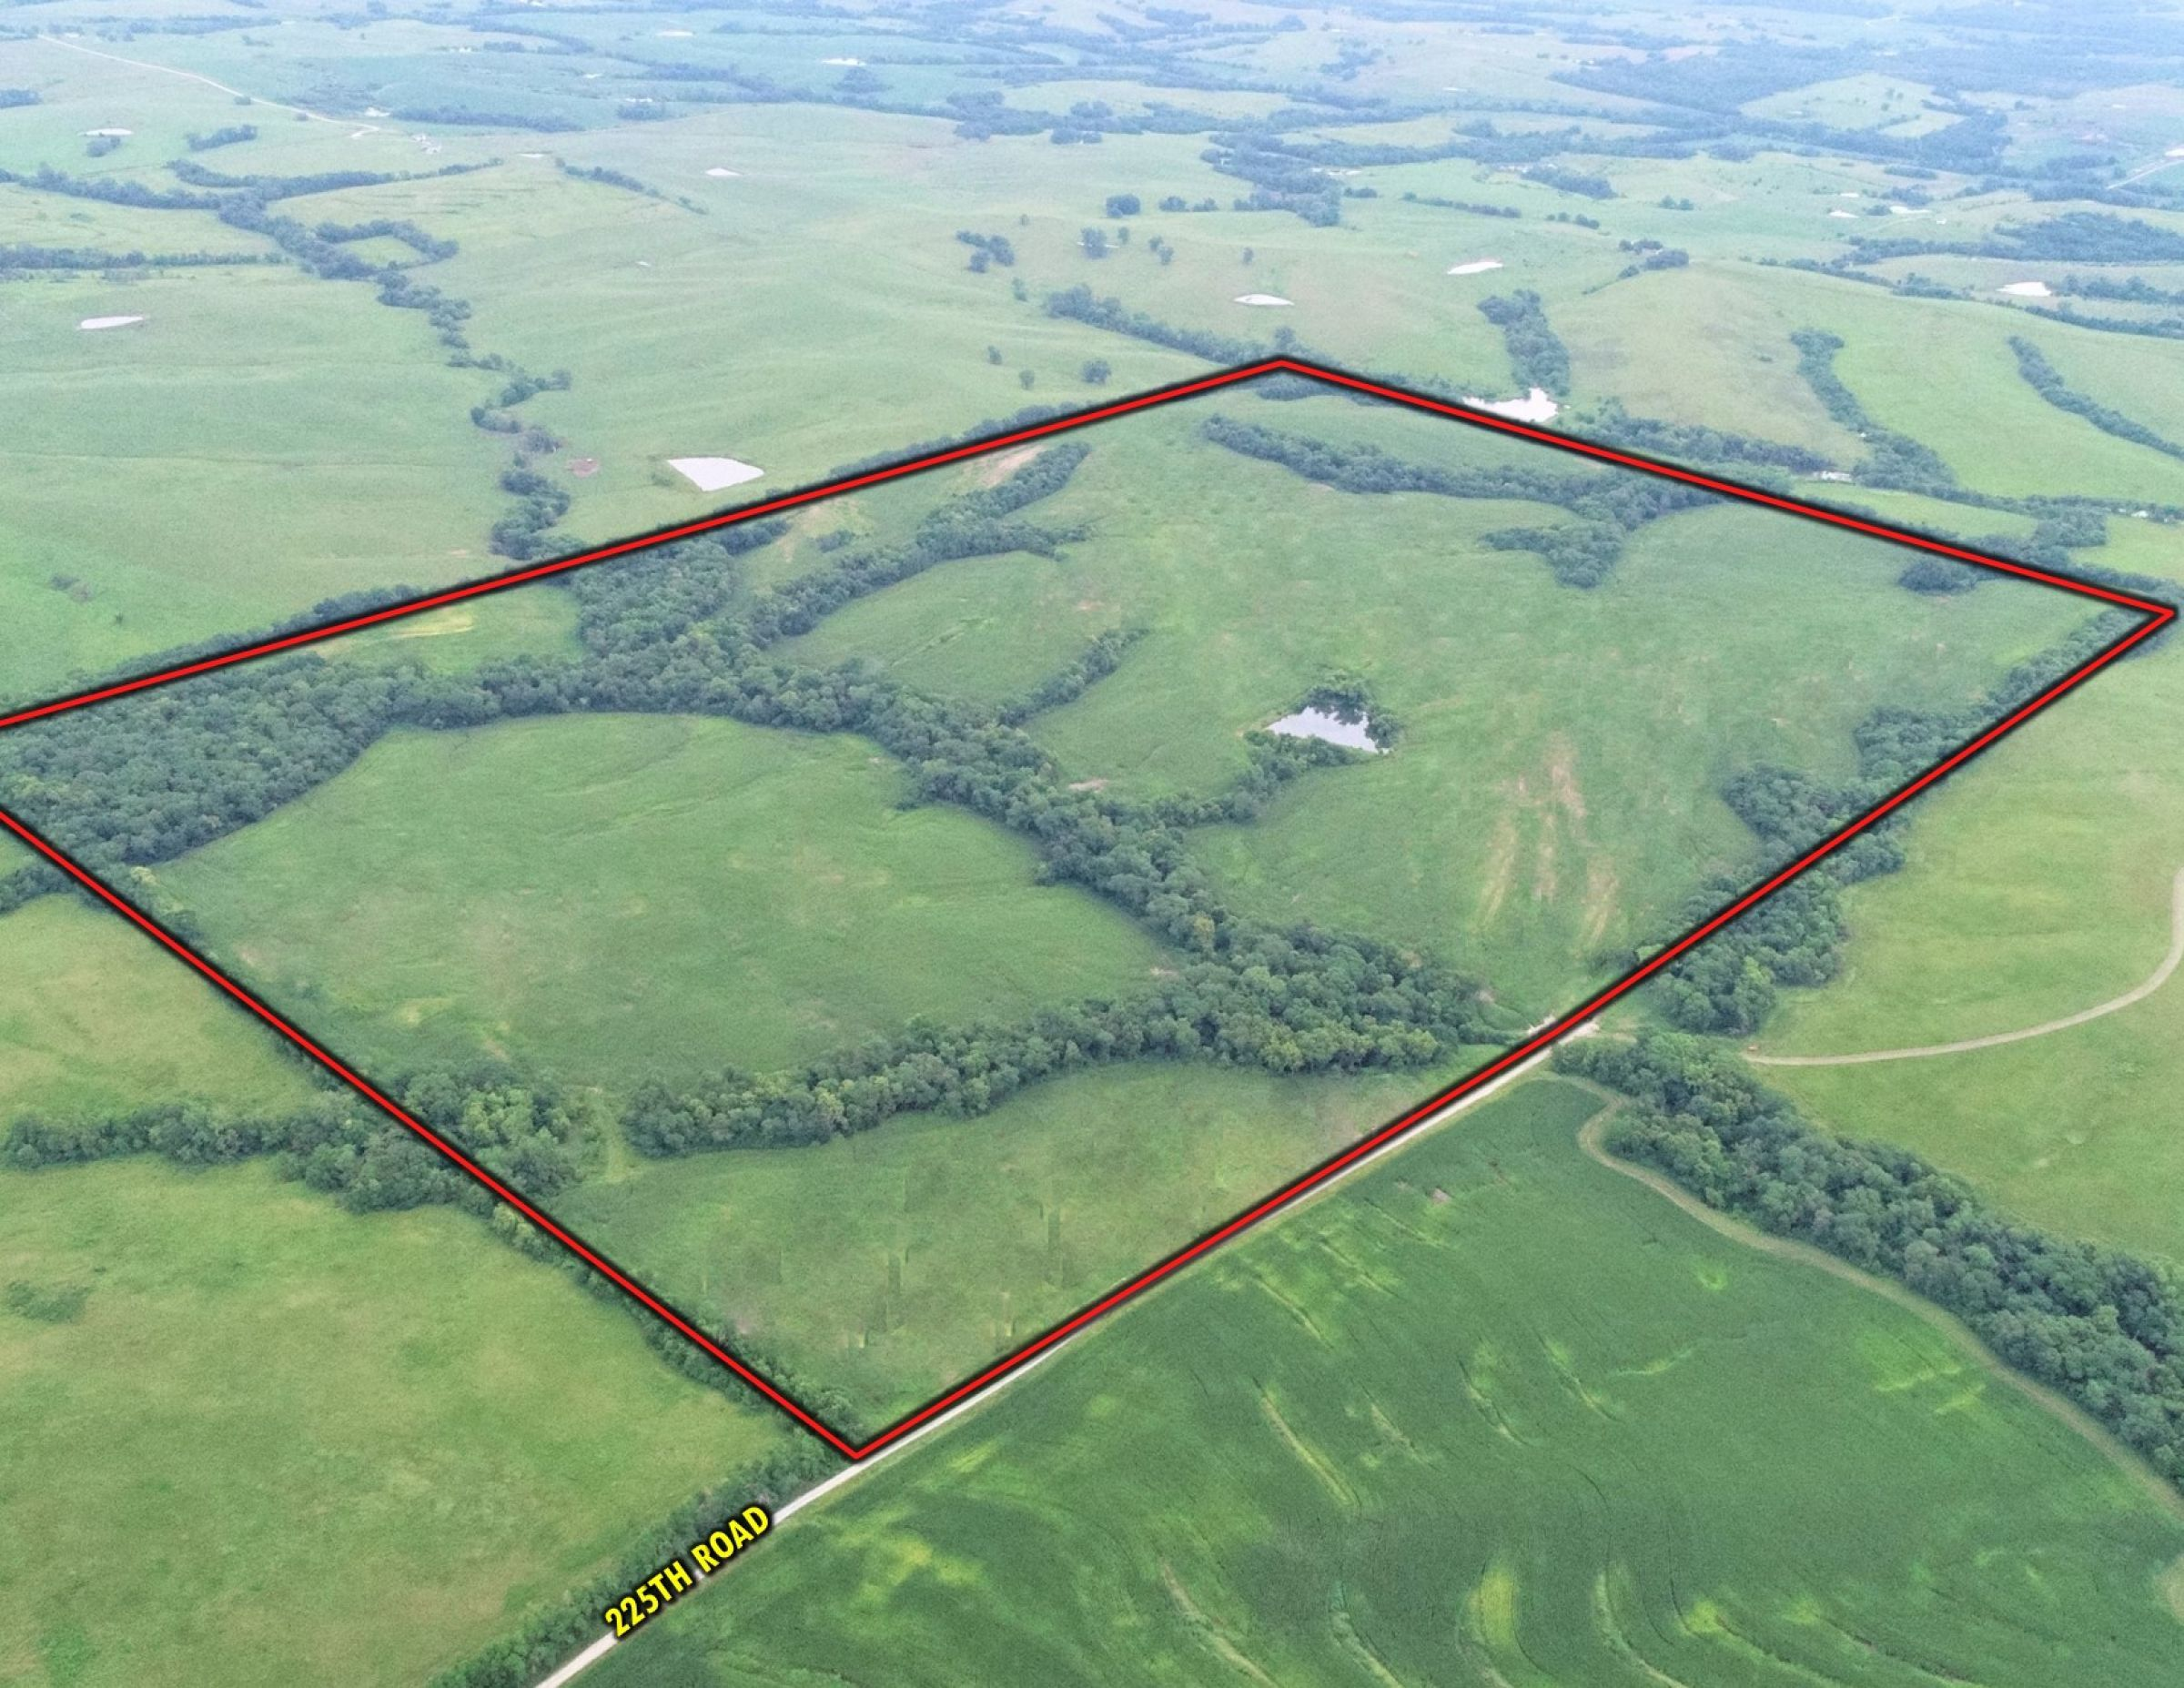 land-worth-county-missouri-240-acres-listing-number-15090-0-2020-08-04-144343.jpg